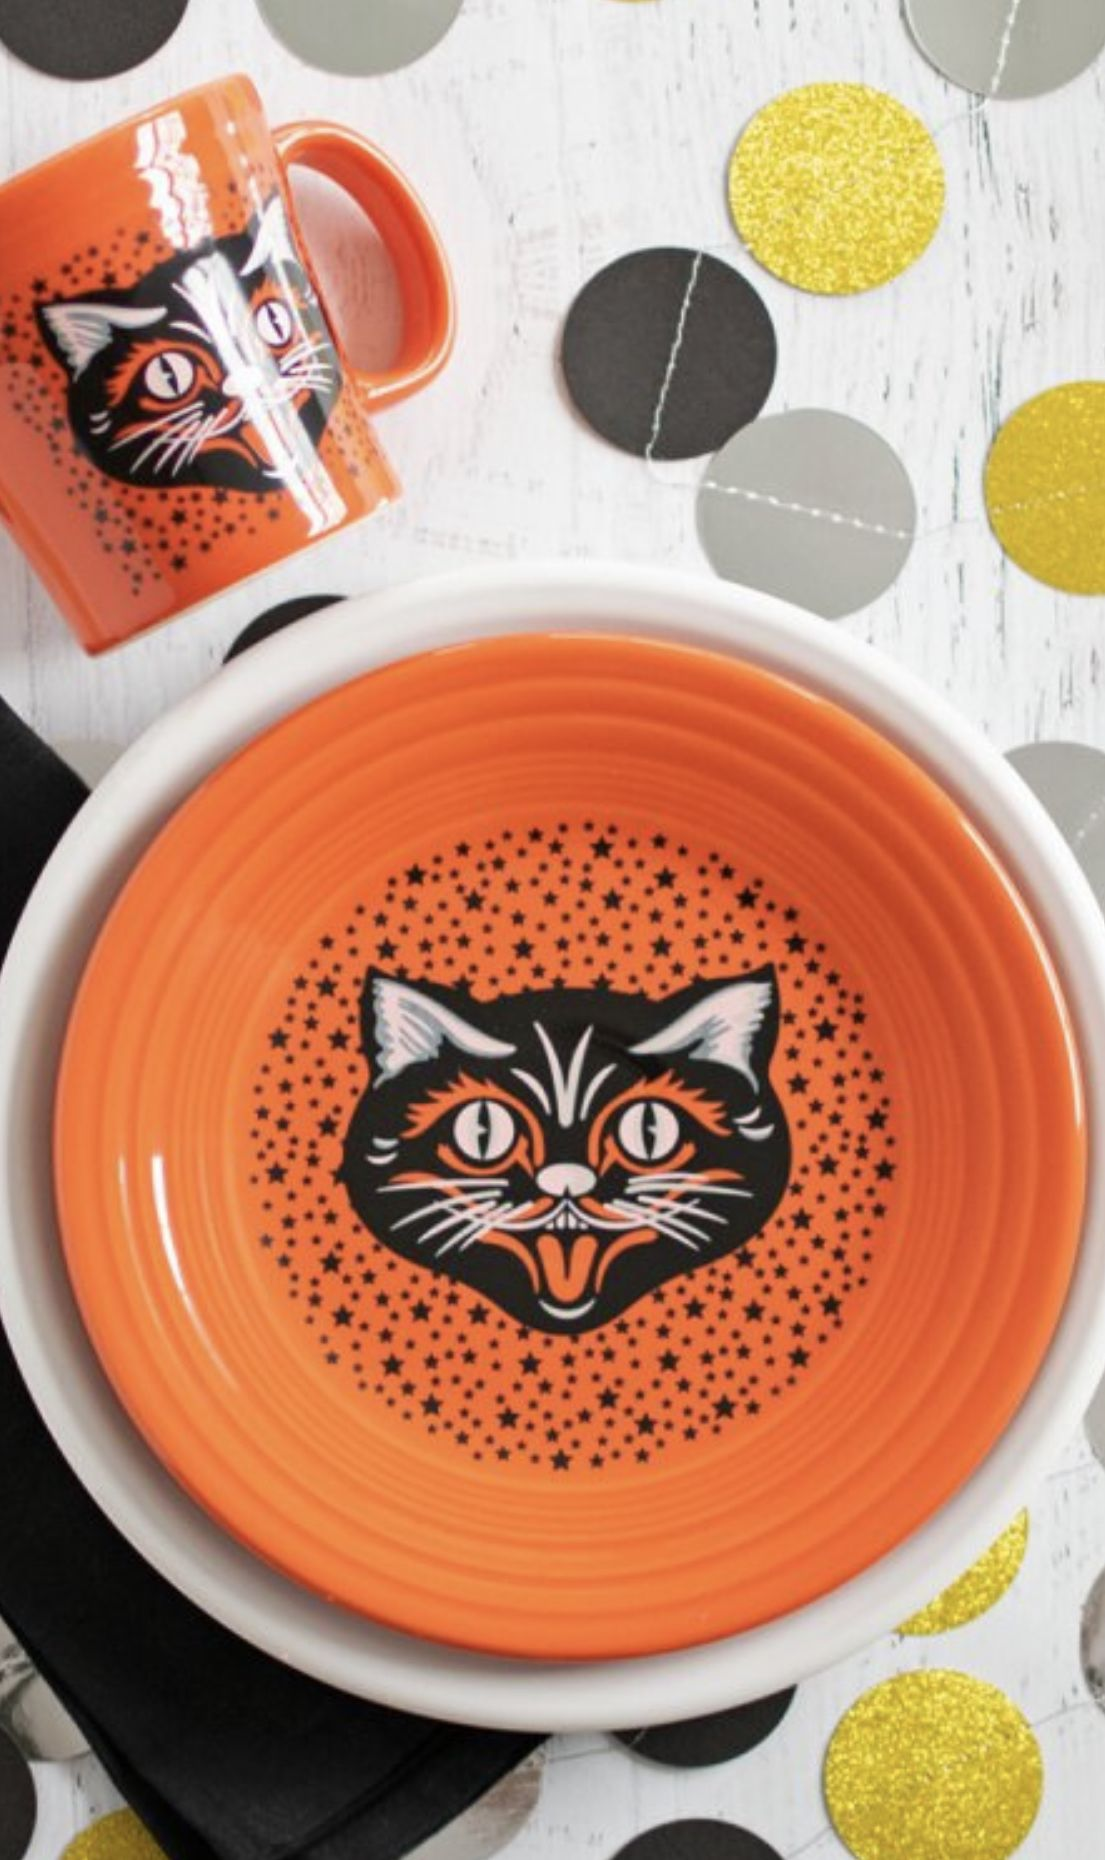 When Does Halloween 2020 Come Out In China Fiesta Black Cat in 2020 | Halloween dinnerware, Halloween